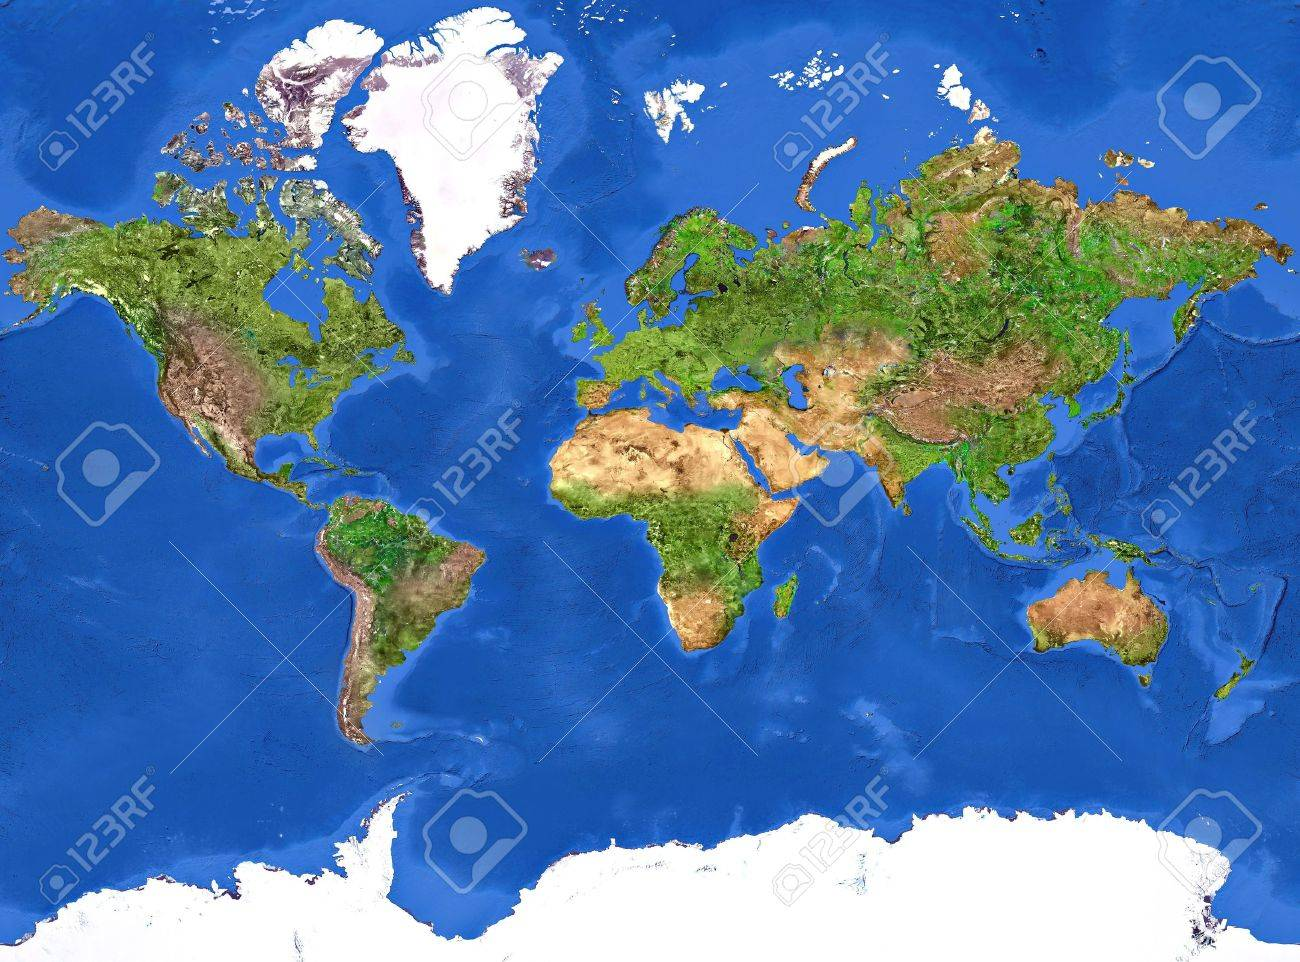 High resolution of the Planet Earth painted texture. - 7005552